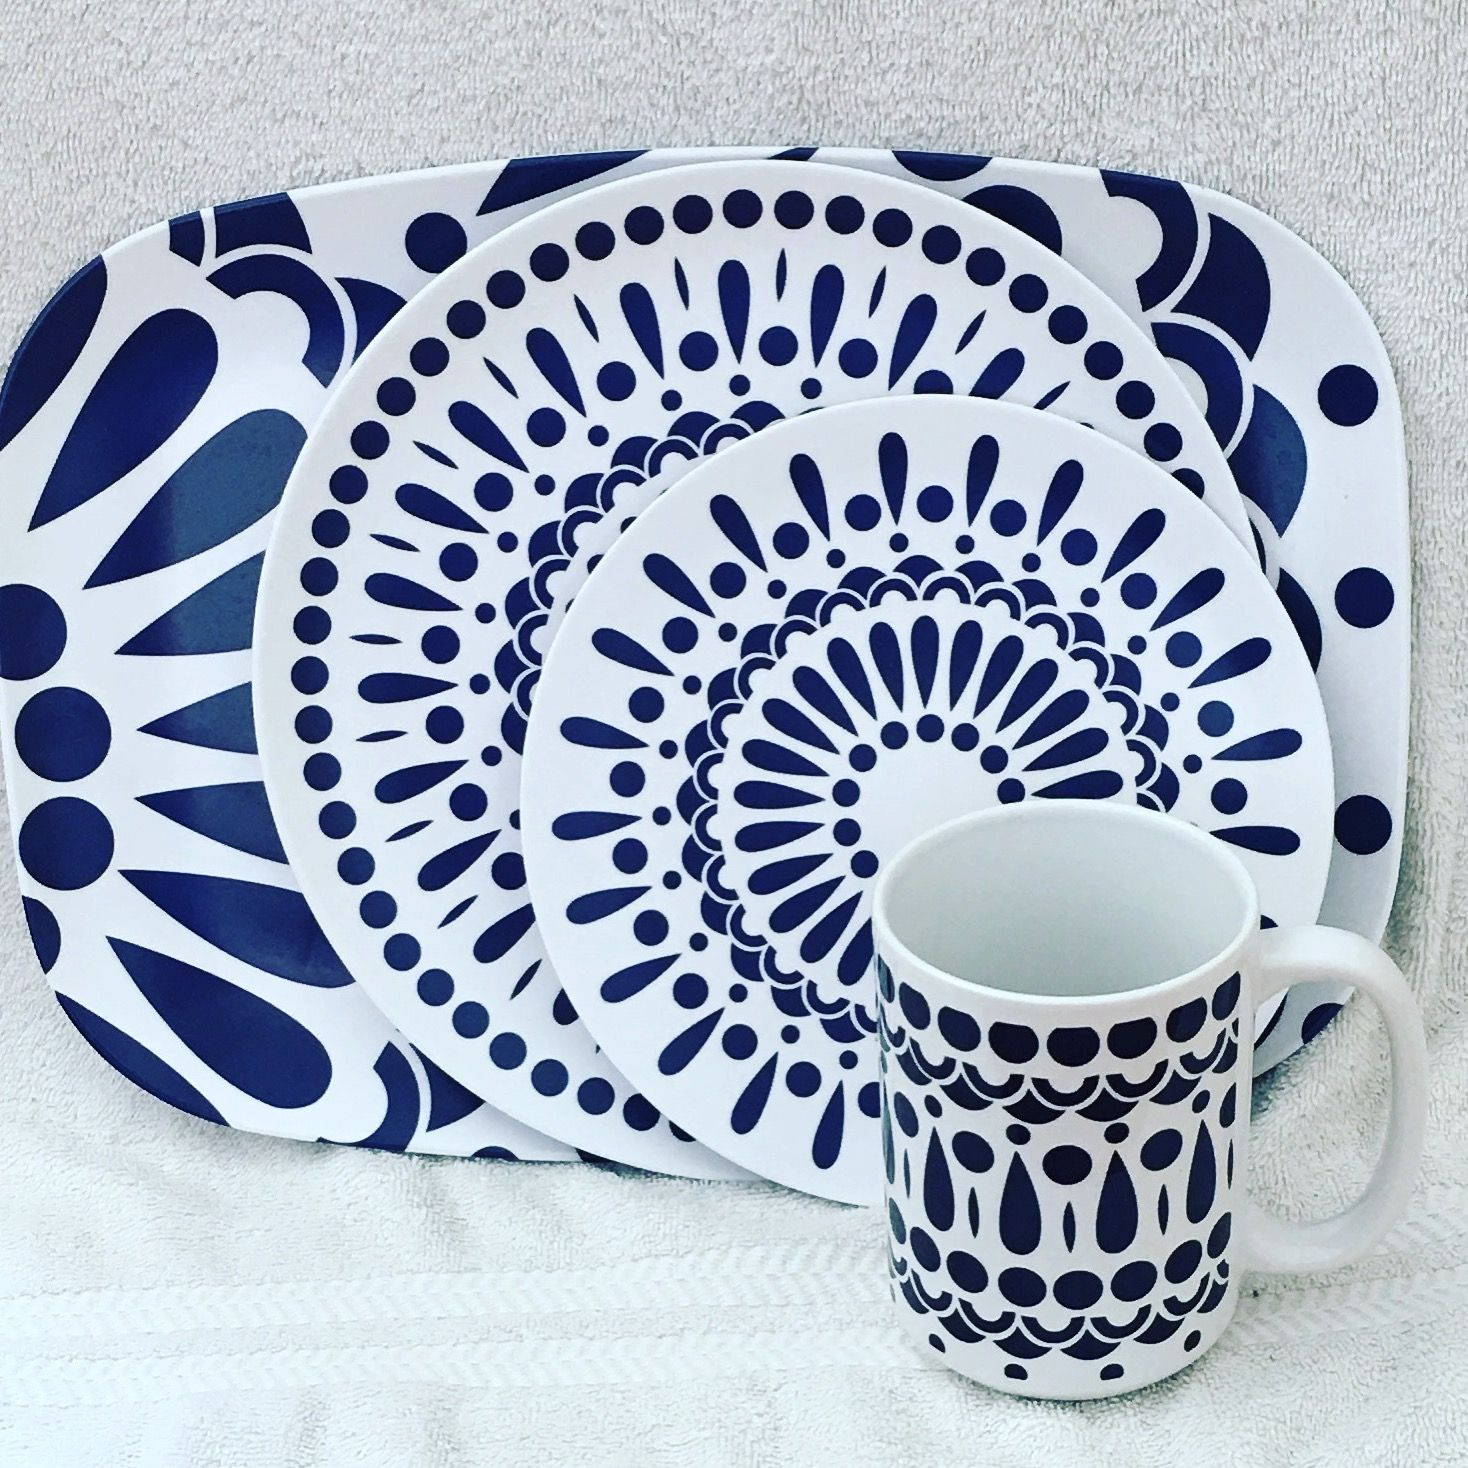 Byzantine Collection( Navy Combo) Plates and Platters made of break resistant Melamine. Dishwasher  sc 1 st  Pinterest & Byzantine Collection( Navy Combo) Plates and Platters made of break ...